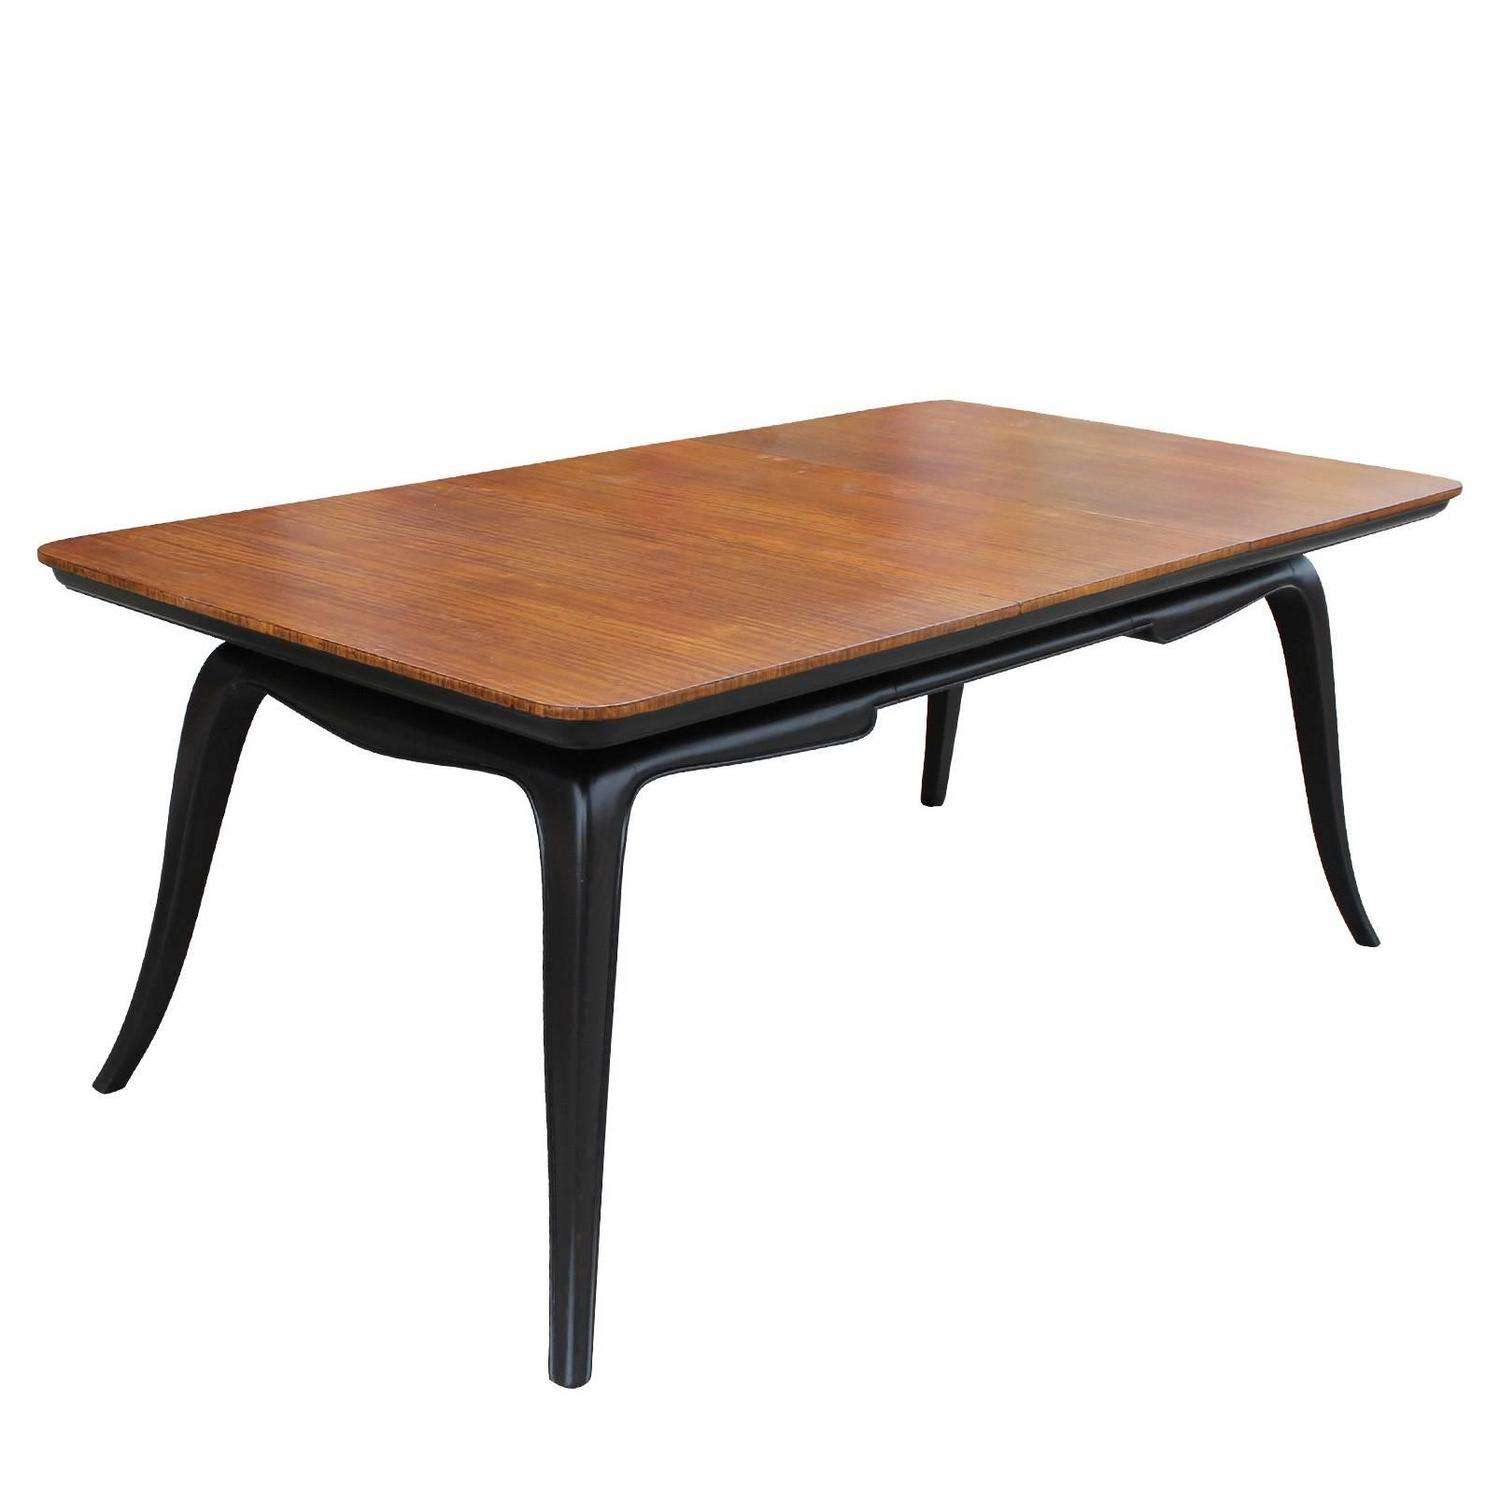 sculptural argentine two tone dining table for sale at 1stdibs